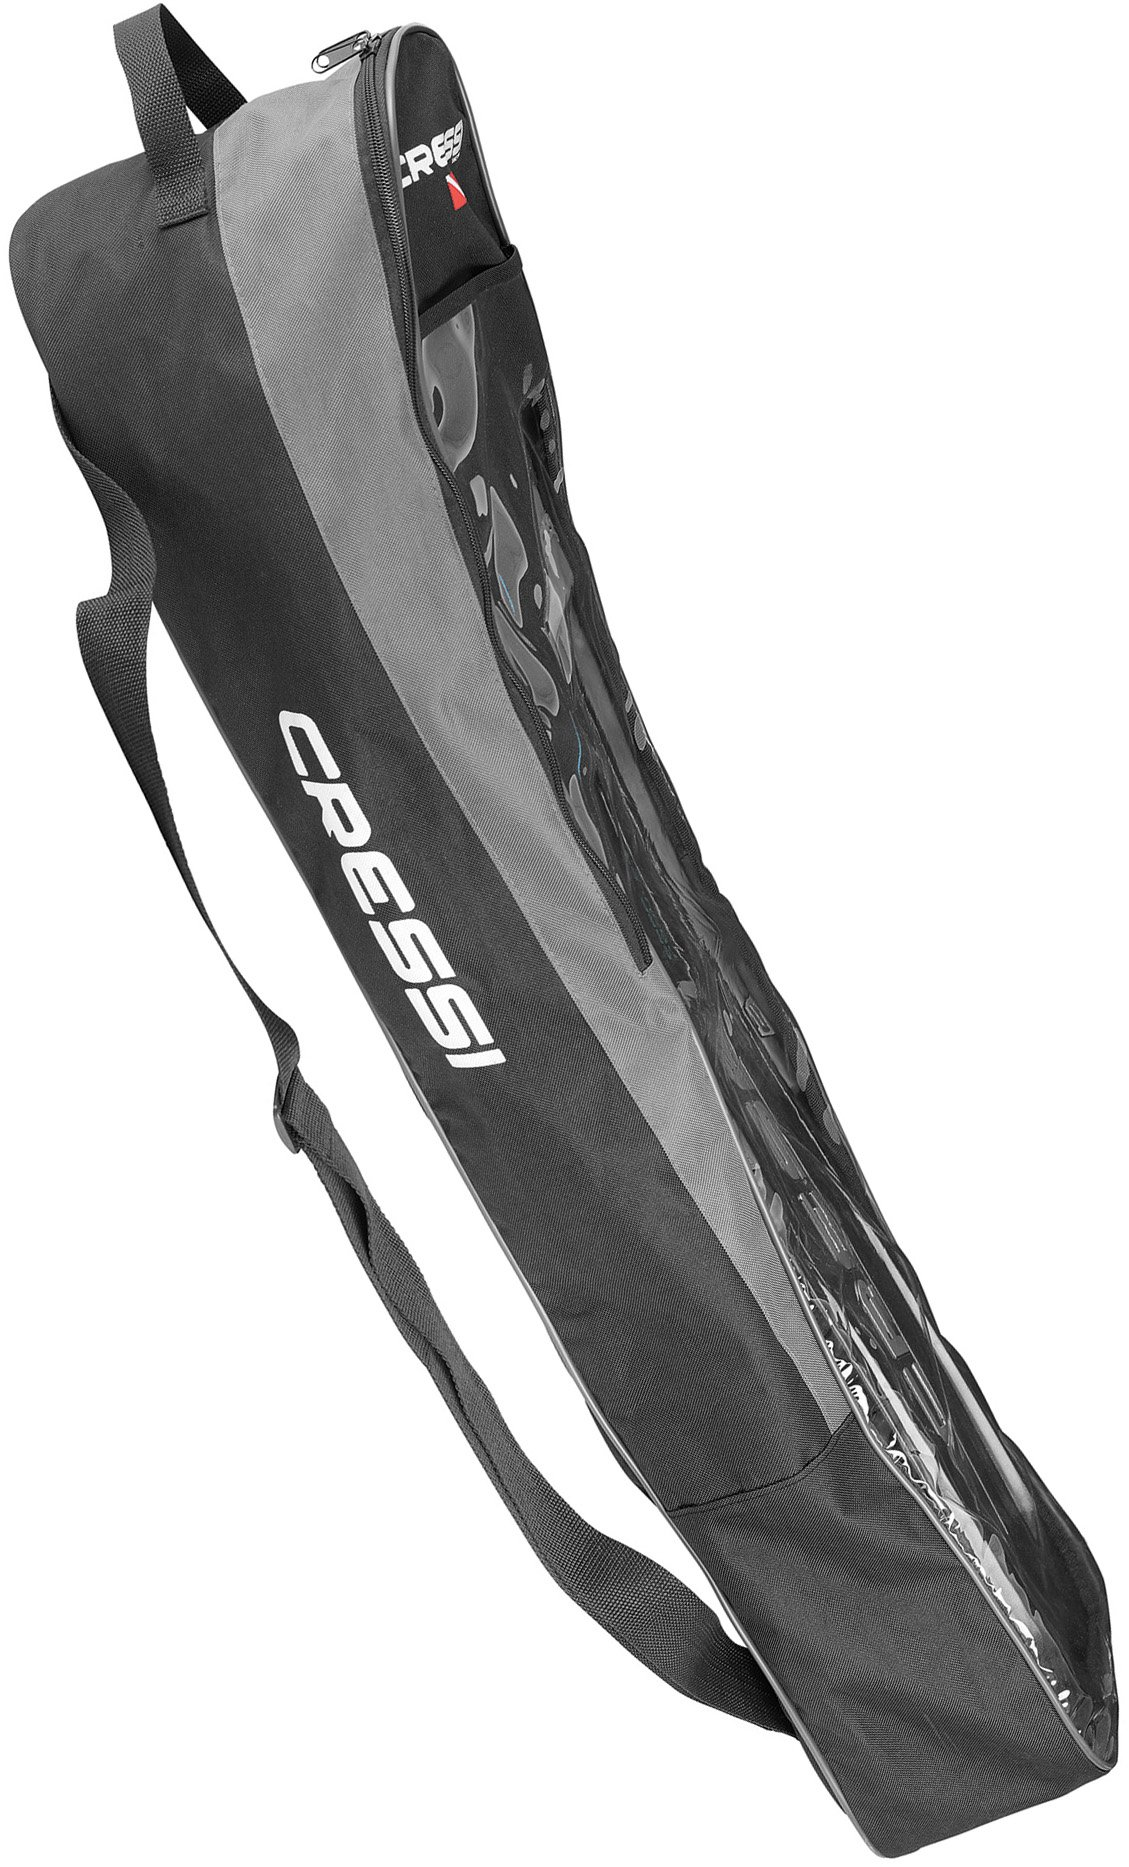 Long Fins Set Bag - Freediving Scuba Gear Bag made in Premium Material by Cressi: quality since 1946 by Cressi